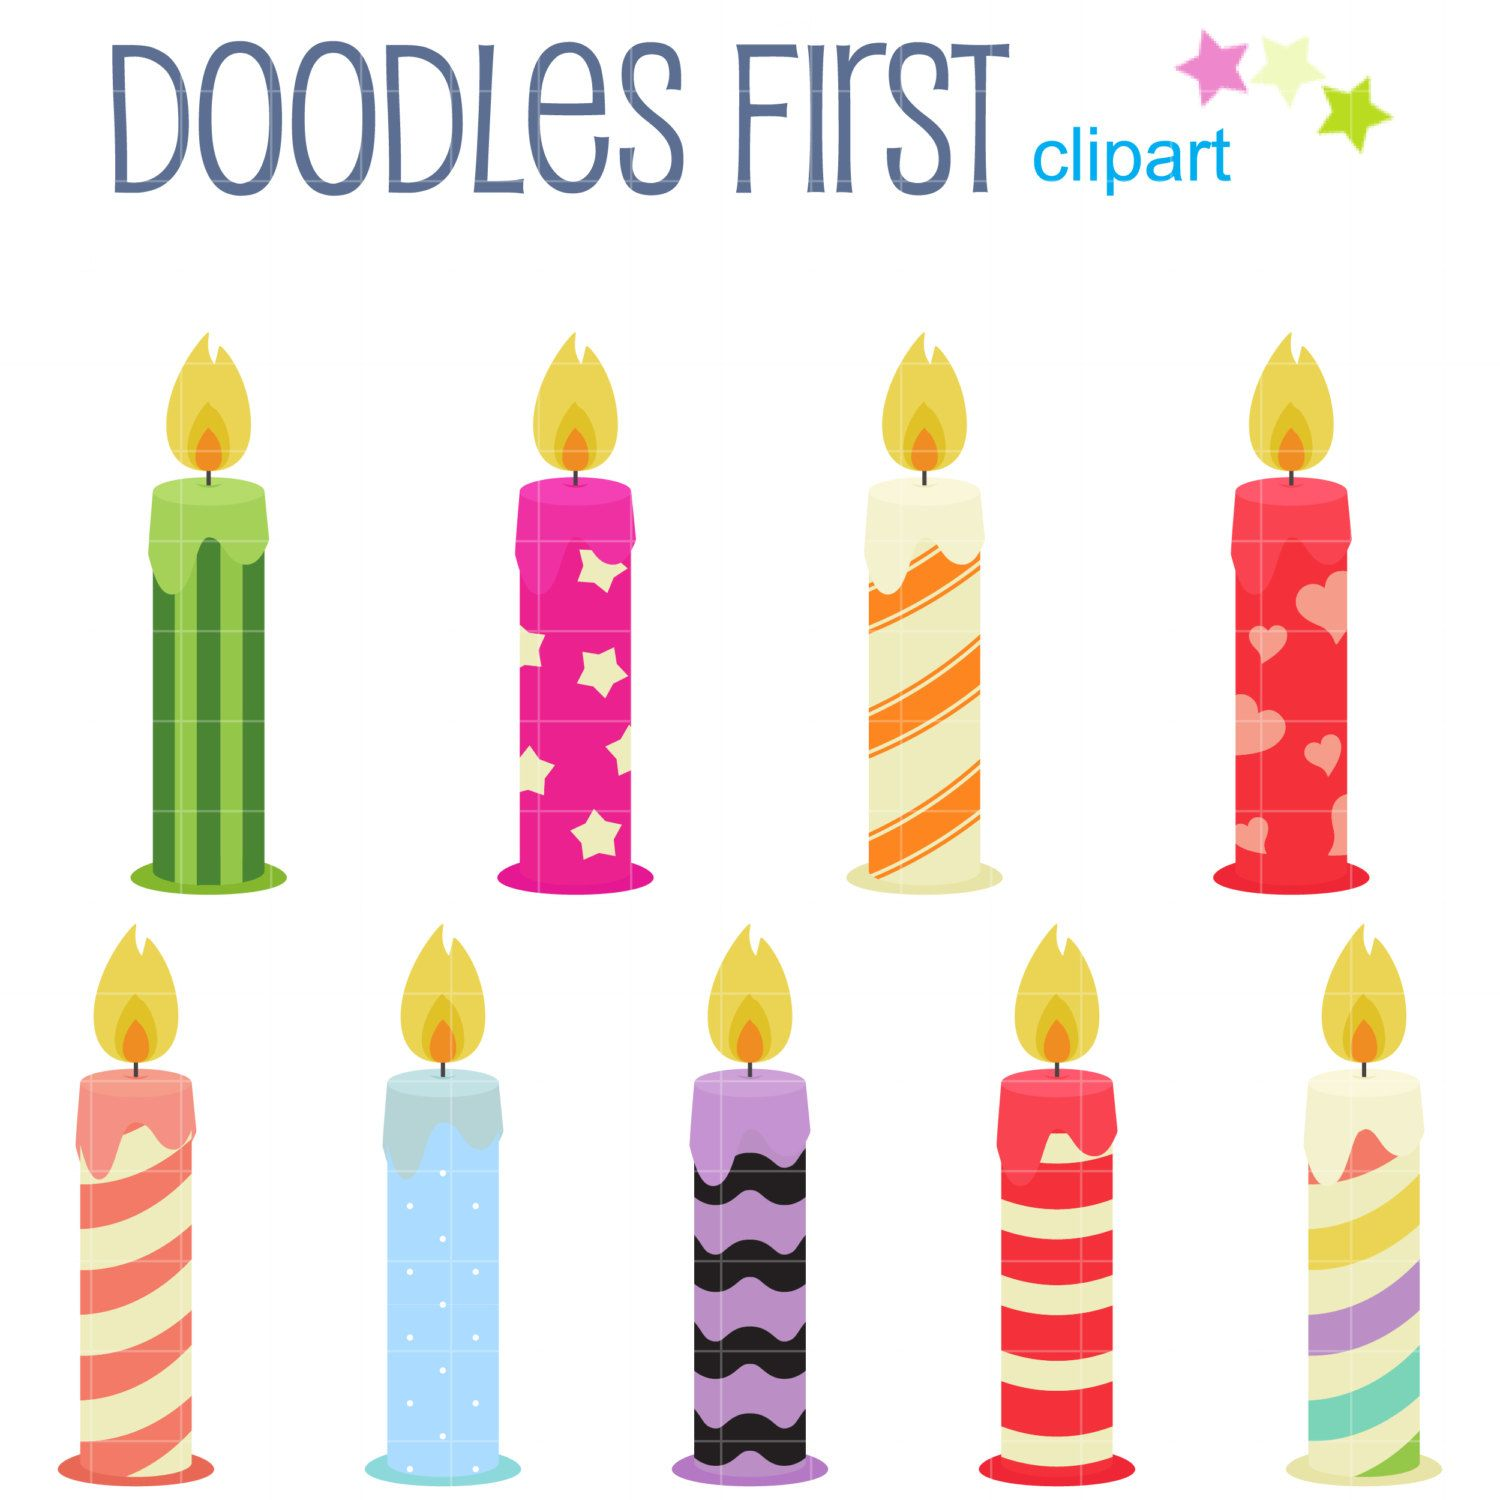 Fun Birthday Candles Digital Clip Art For Scrapbooking Card Making Cupcake Toppers Paper Crafts 299 USD By DoodlesFirst